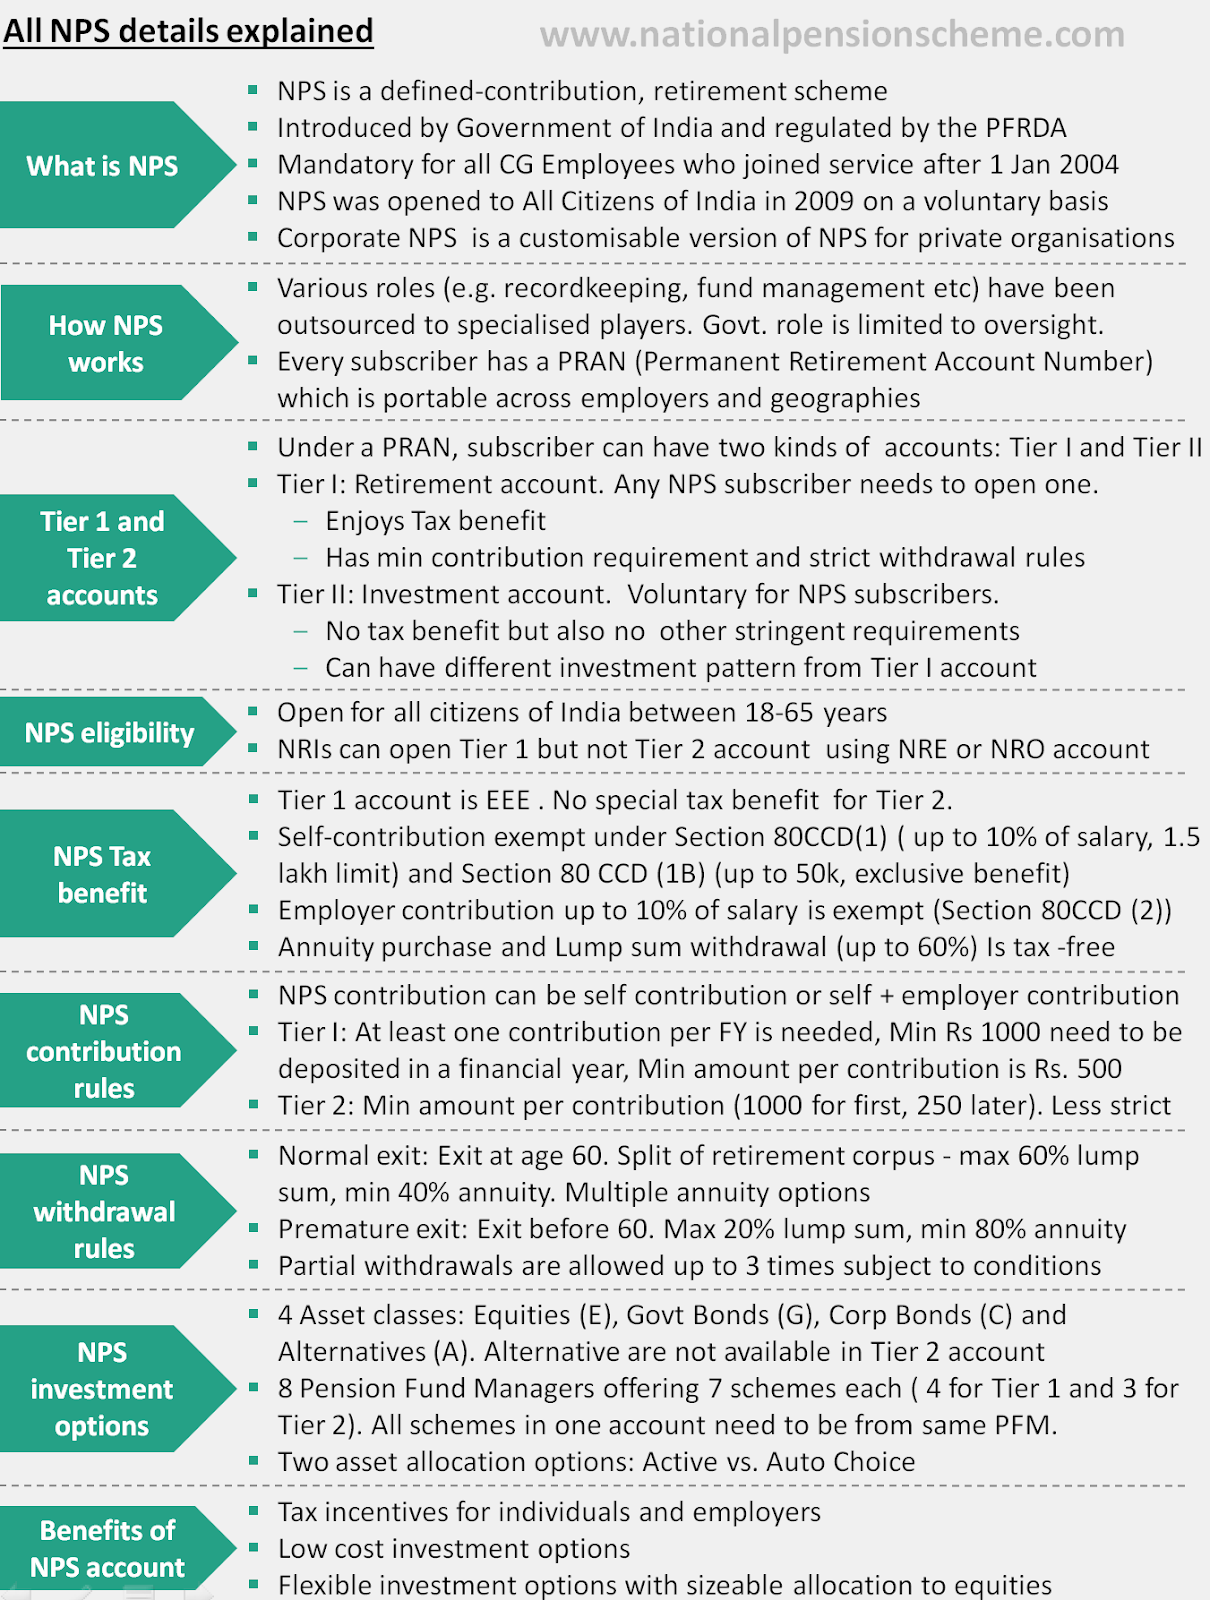 Summary of all NPS scheme details in one image